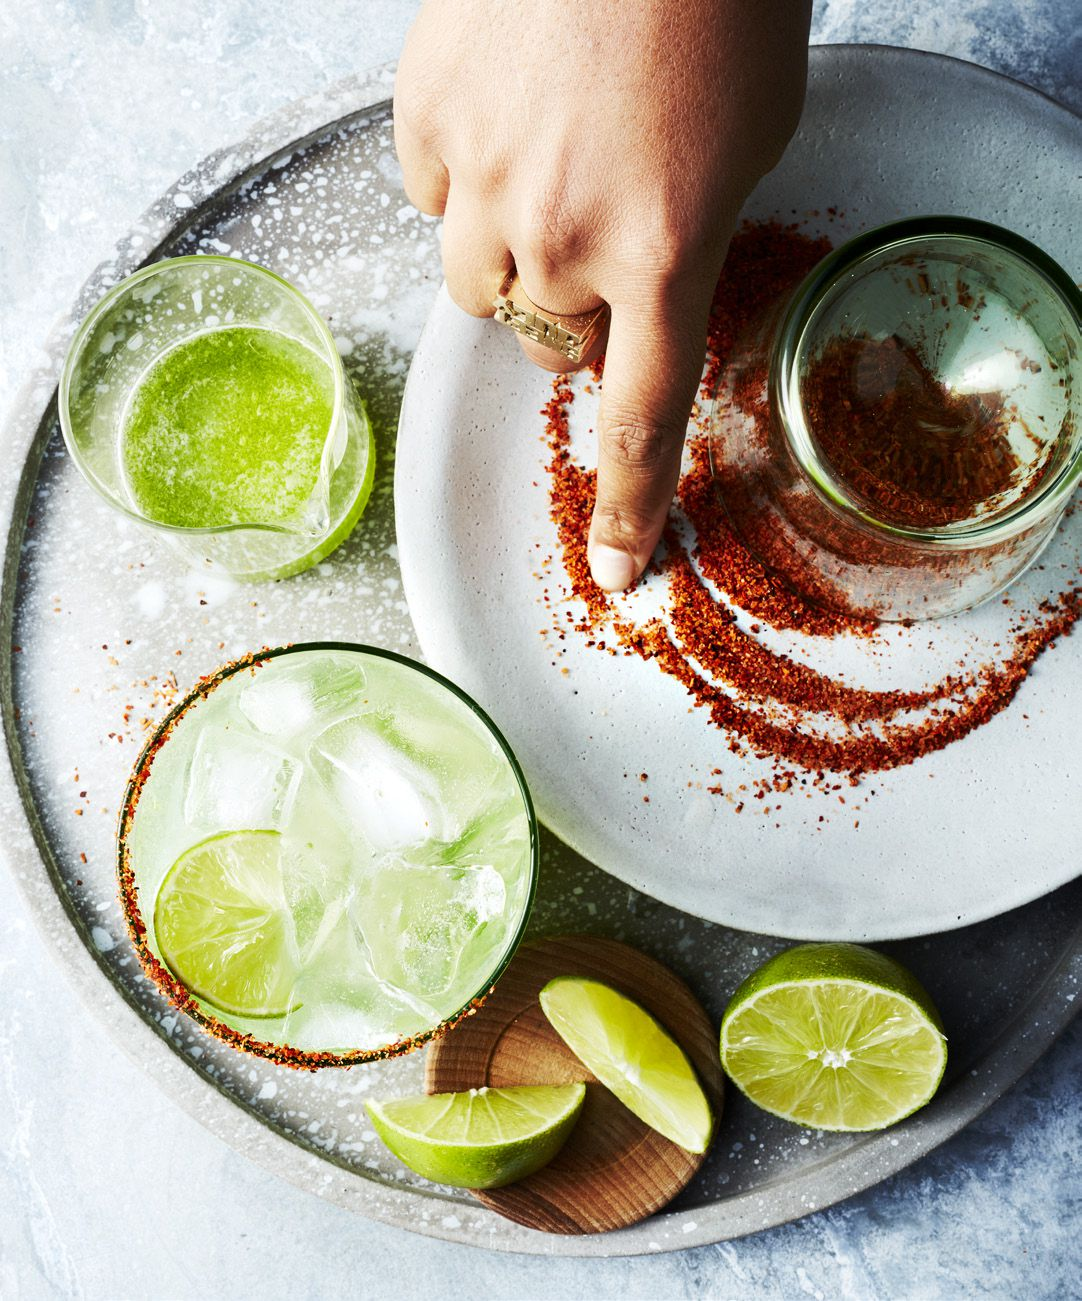 Spicy margs from Ayesha Curry cookbook